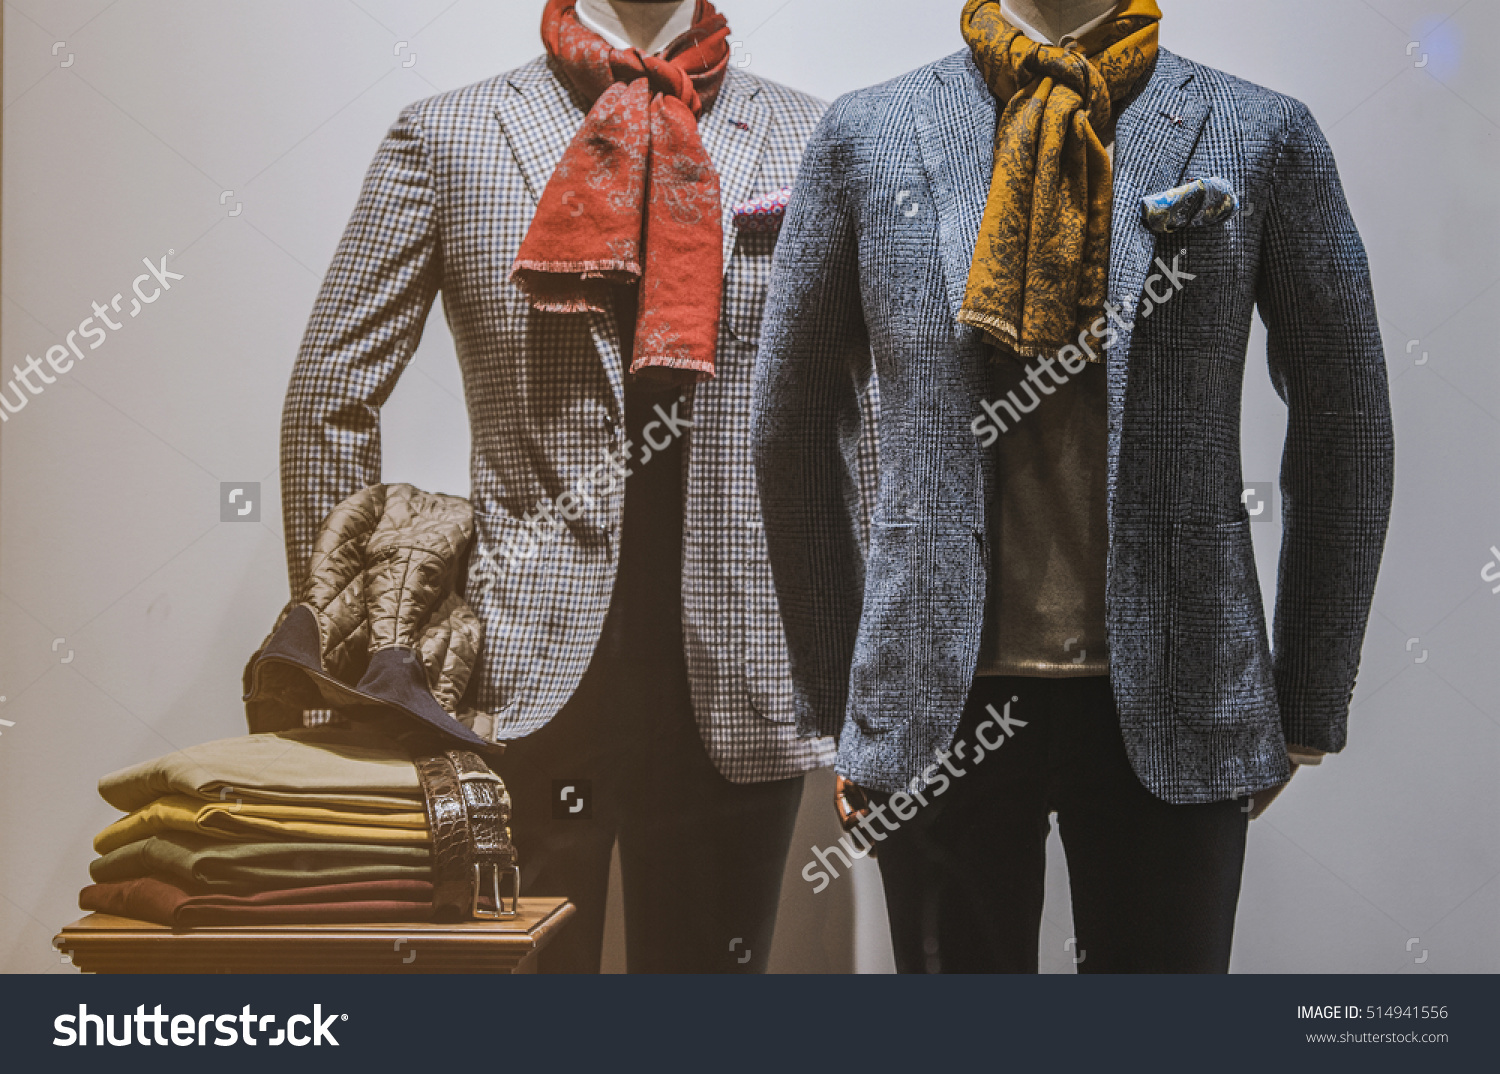 stock-photo-elegant-men-clothing-in-a-fashion-store-514941556.jpg